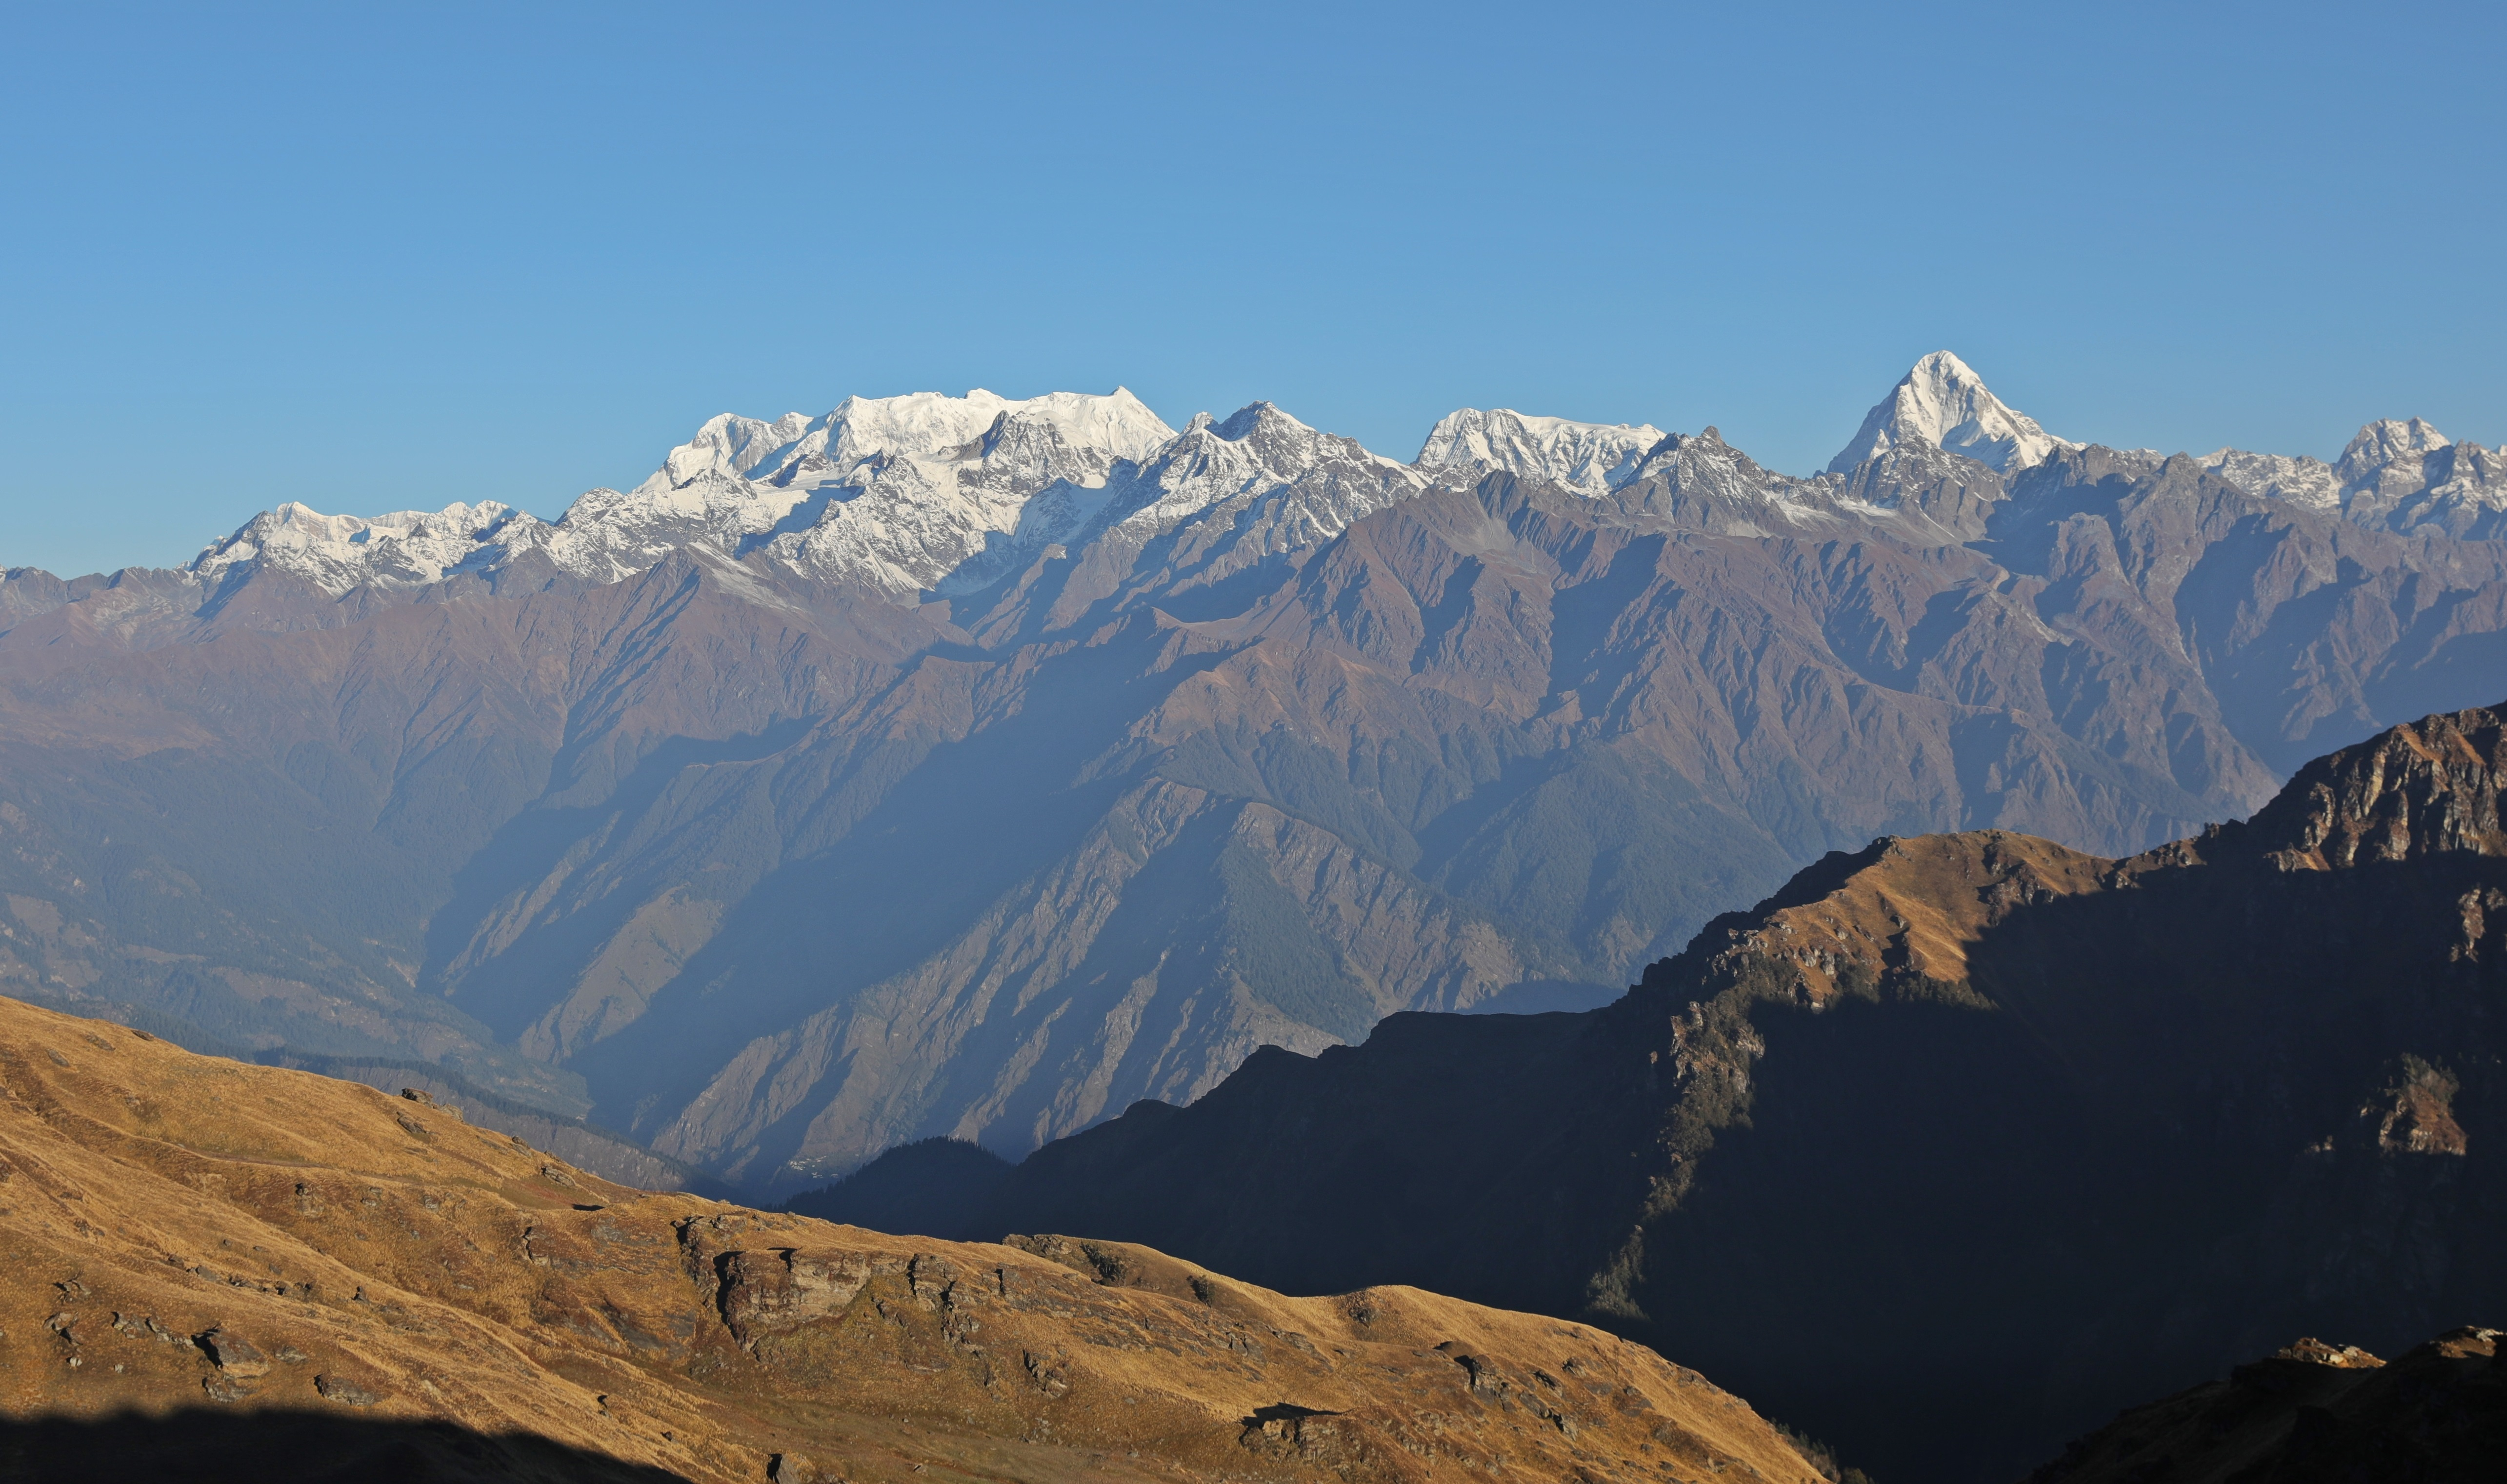 Mt. Neelkanth and the Western Garhwal Range from Kuari Pass